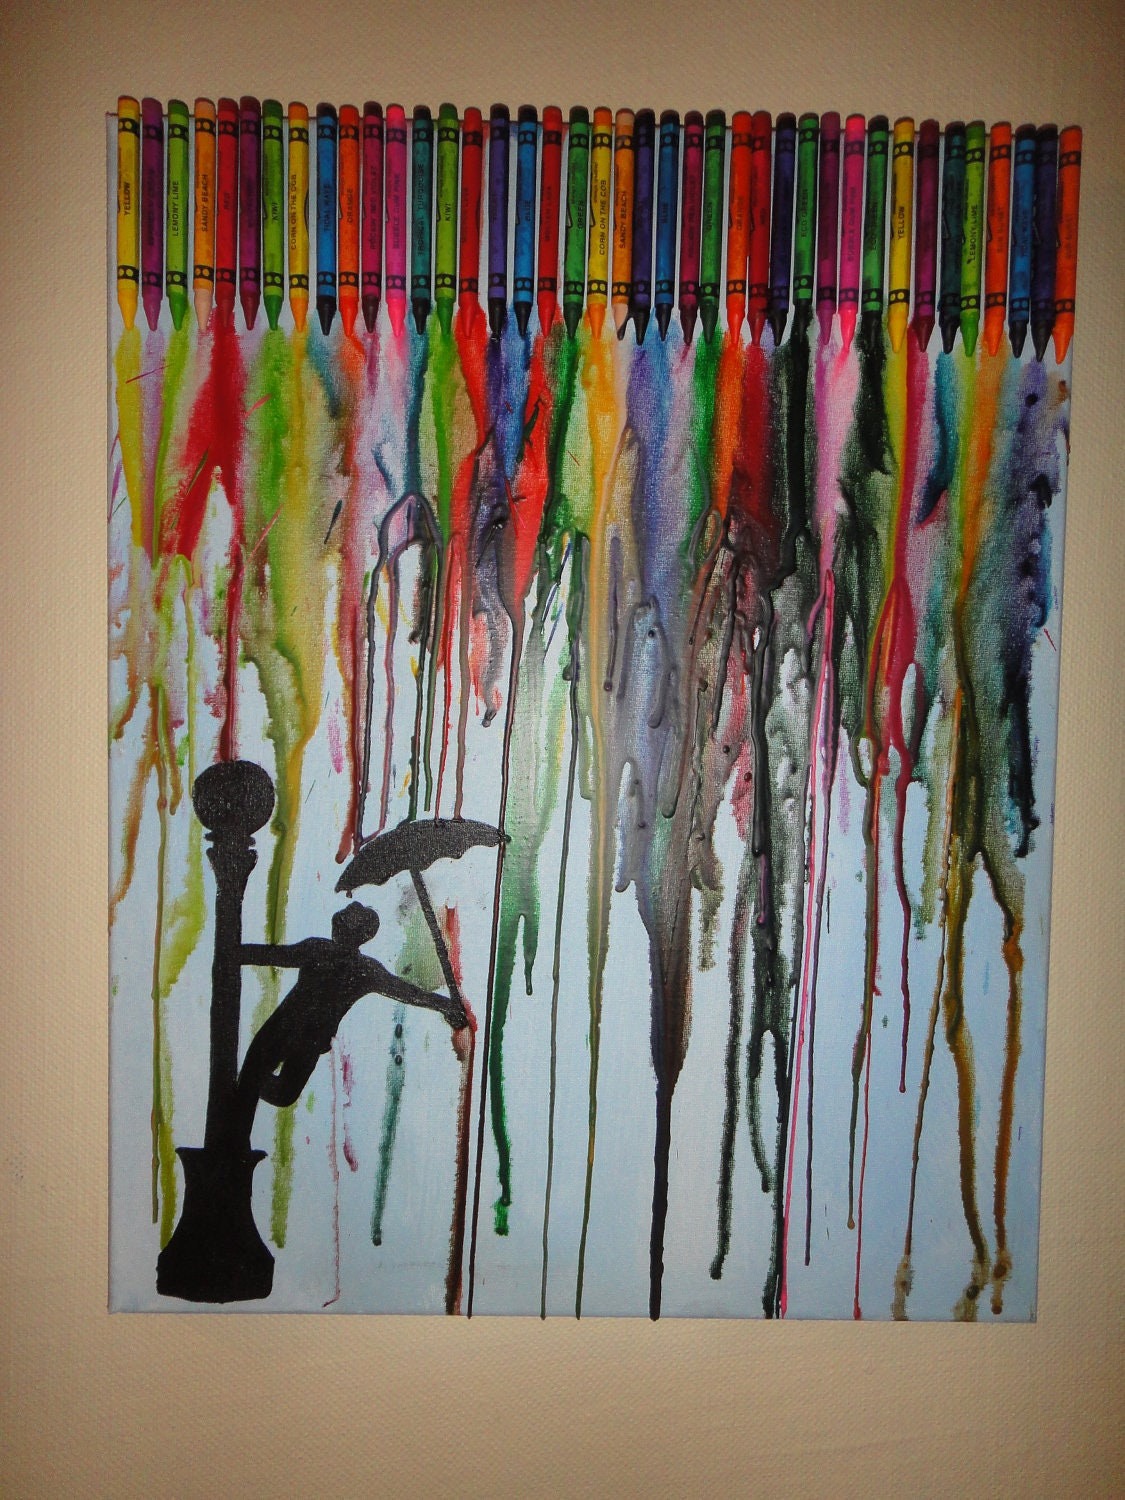 Singing in the crayons by autumna on etsy for Melted crayon art techniques